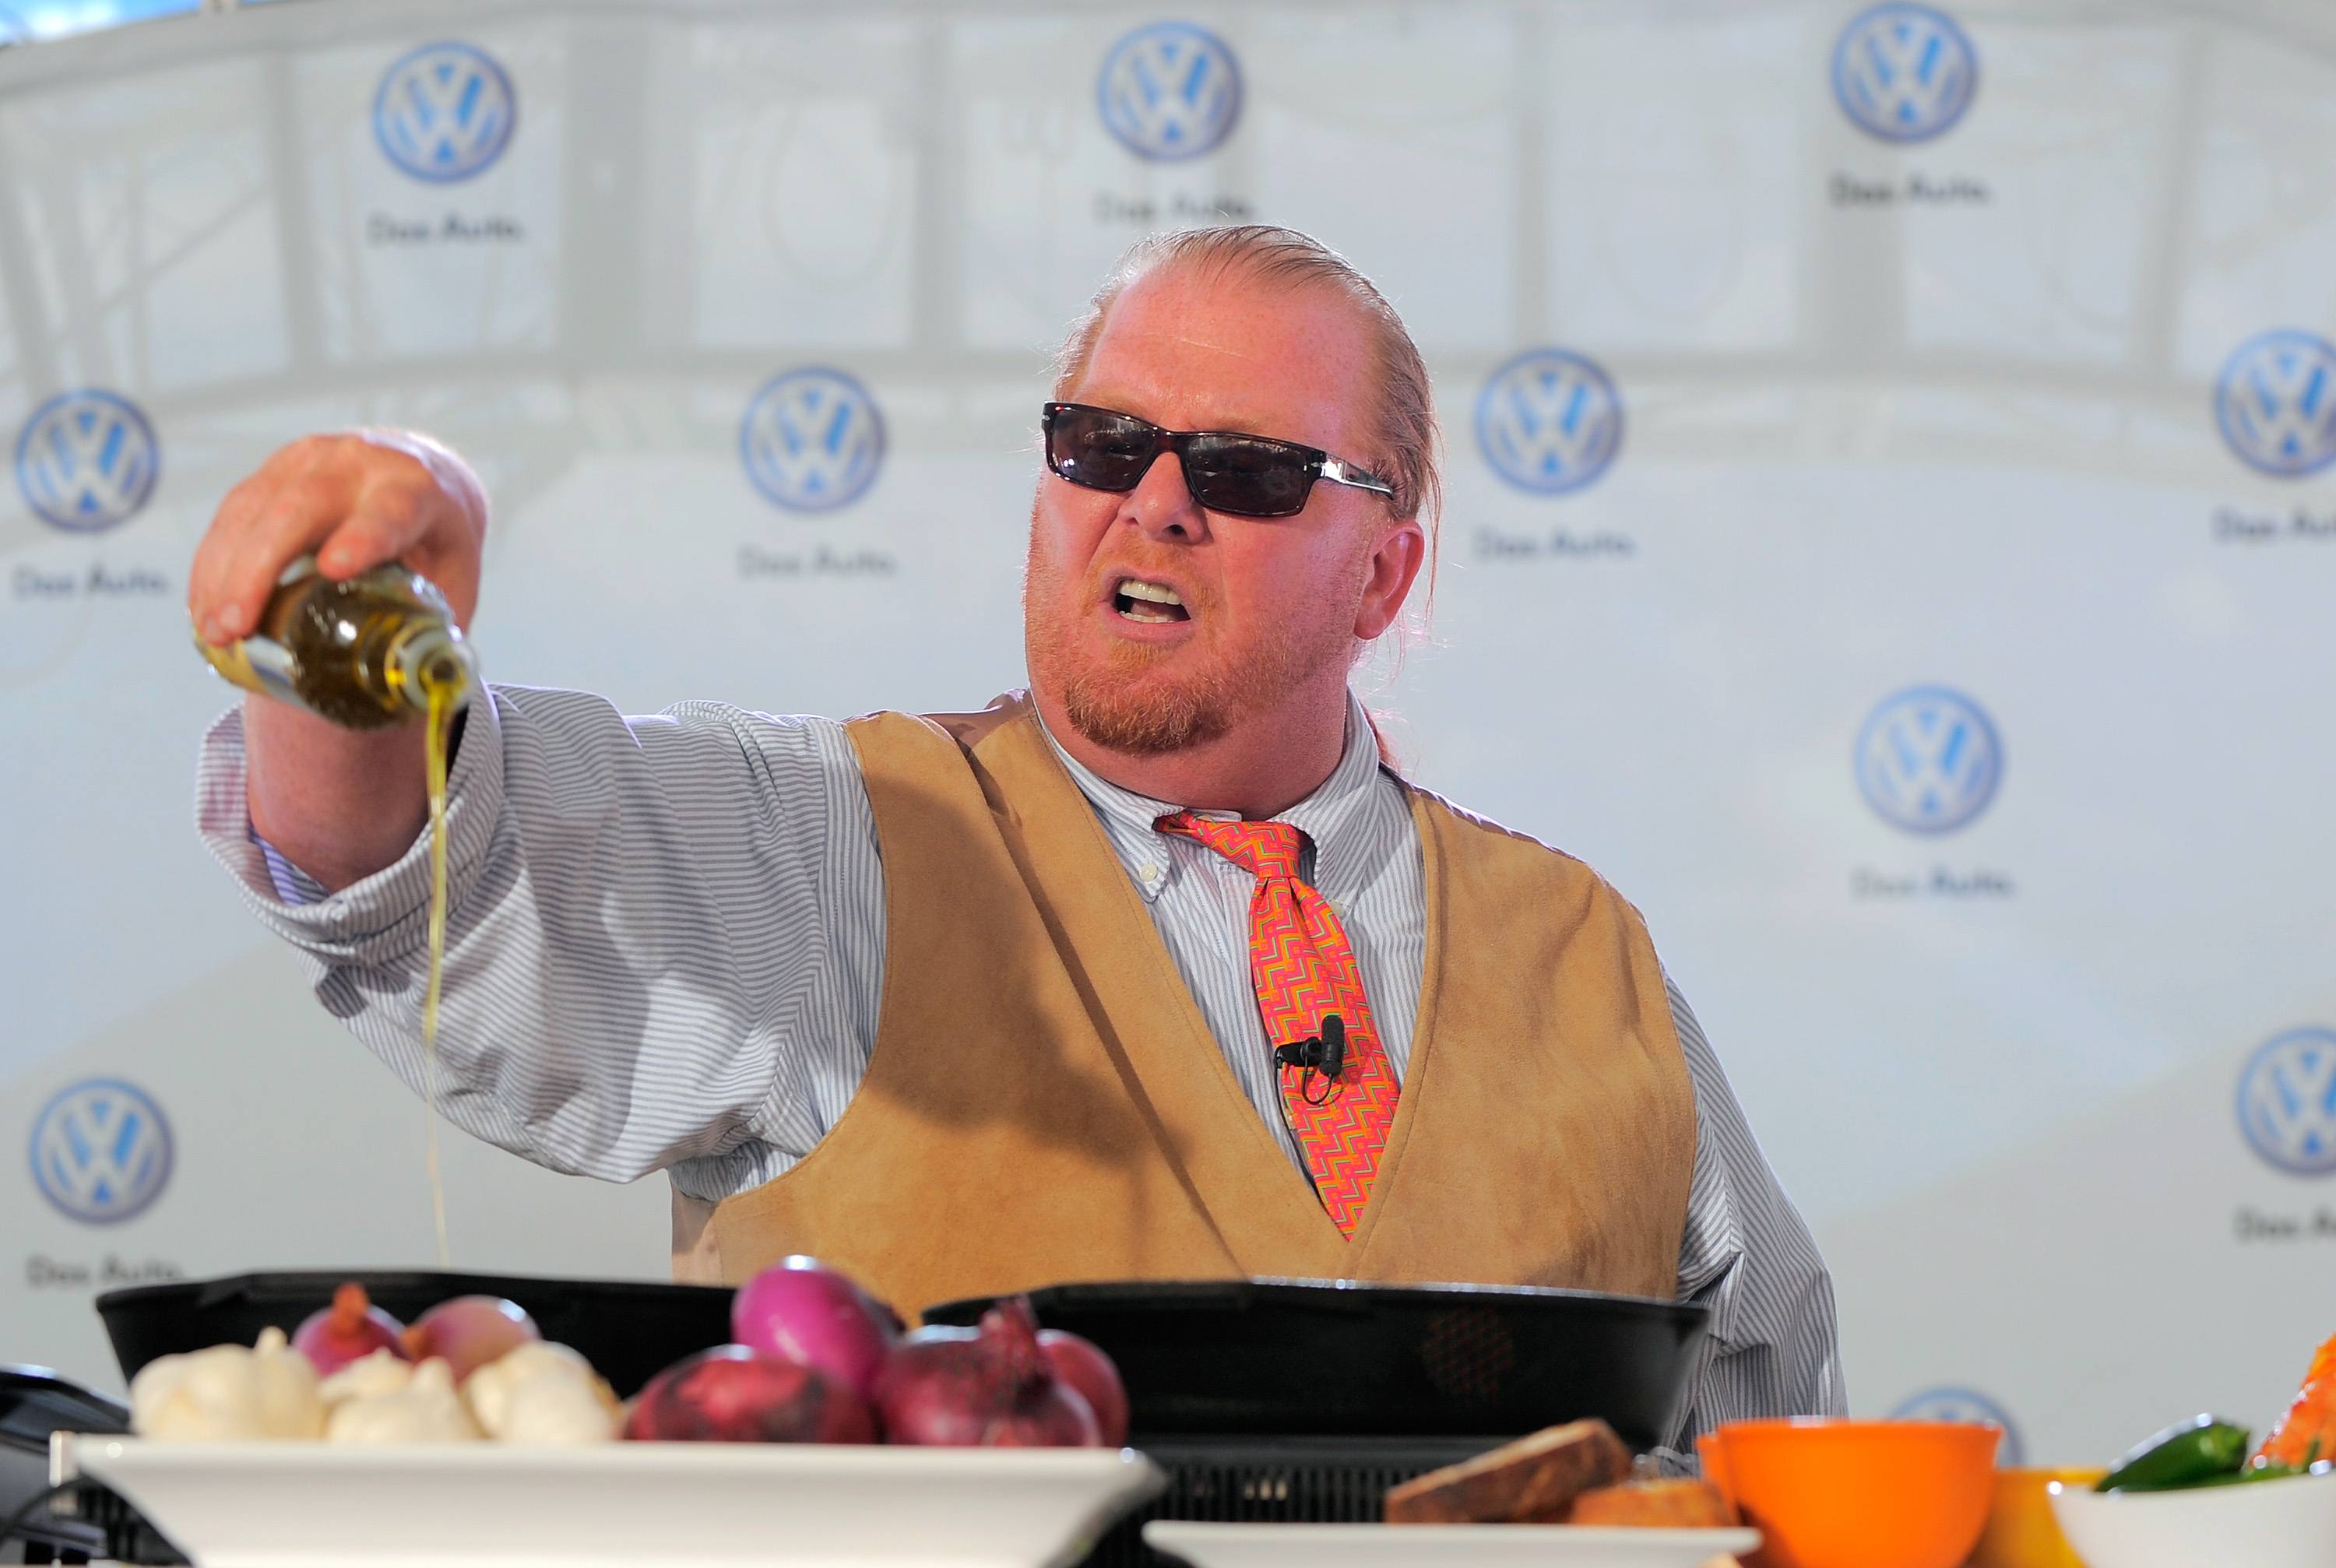 Chef Mario Batali prepares several dishes for the crowd